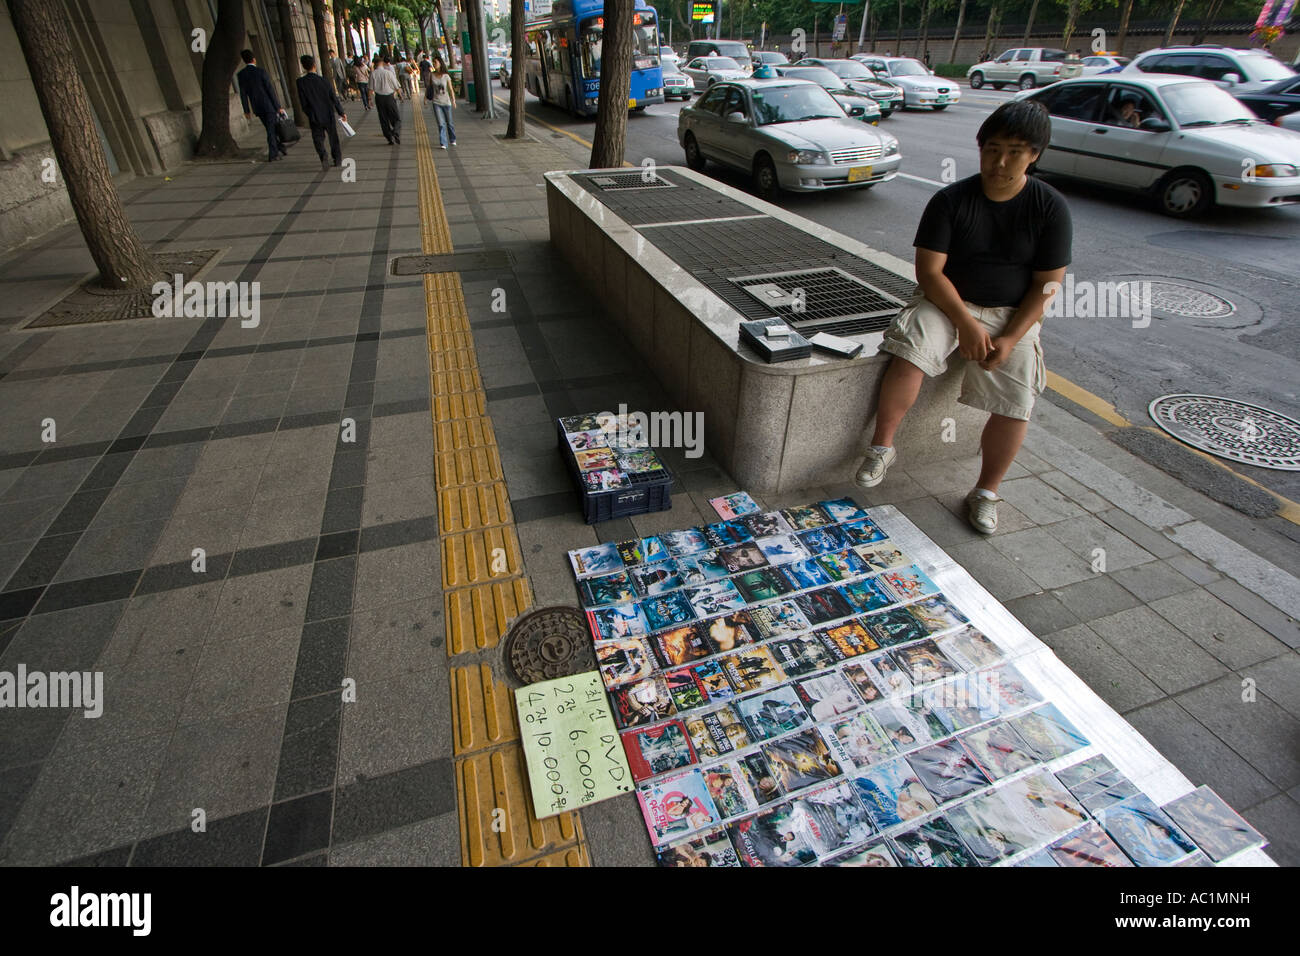 Vendor Selling Counterfeit Bootleg DVD Movies on the Street